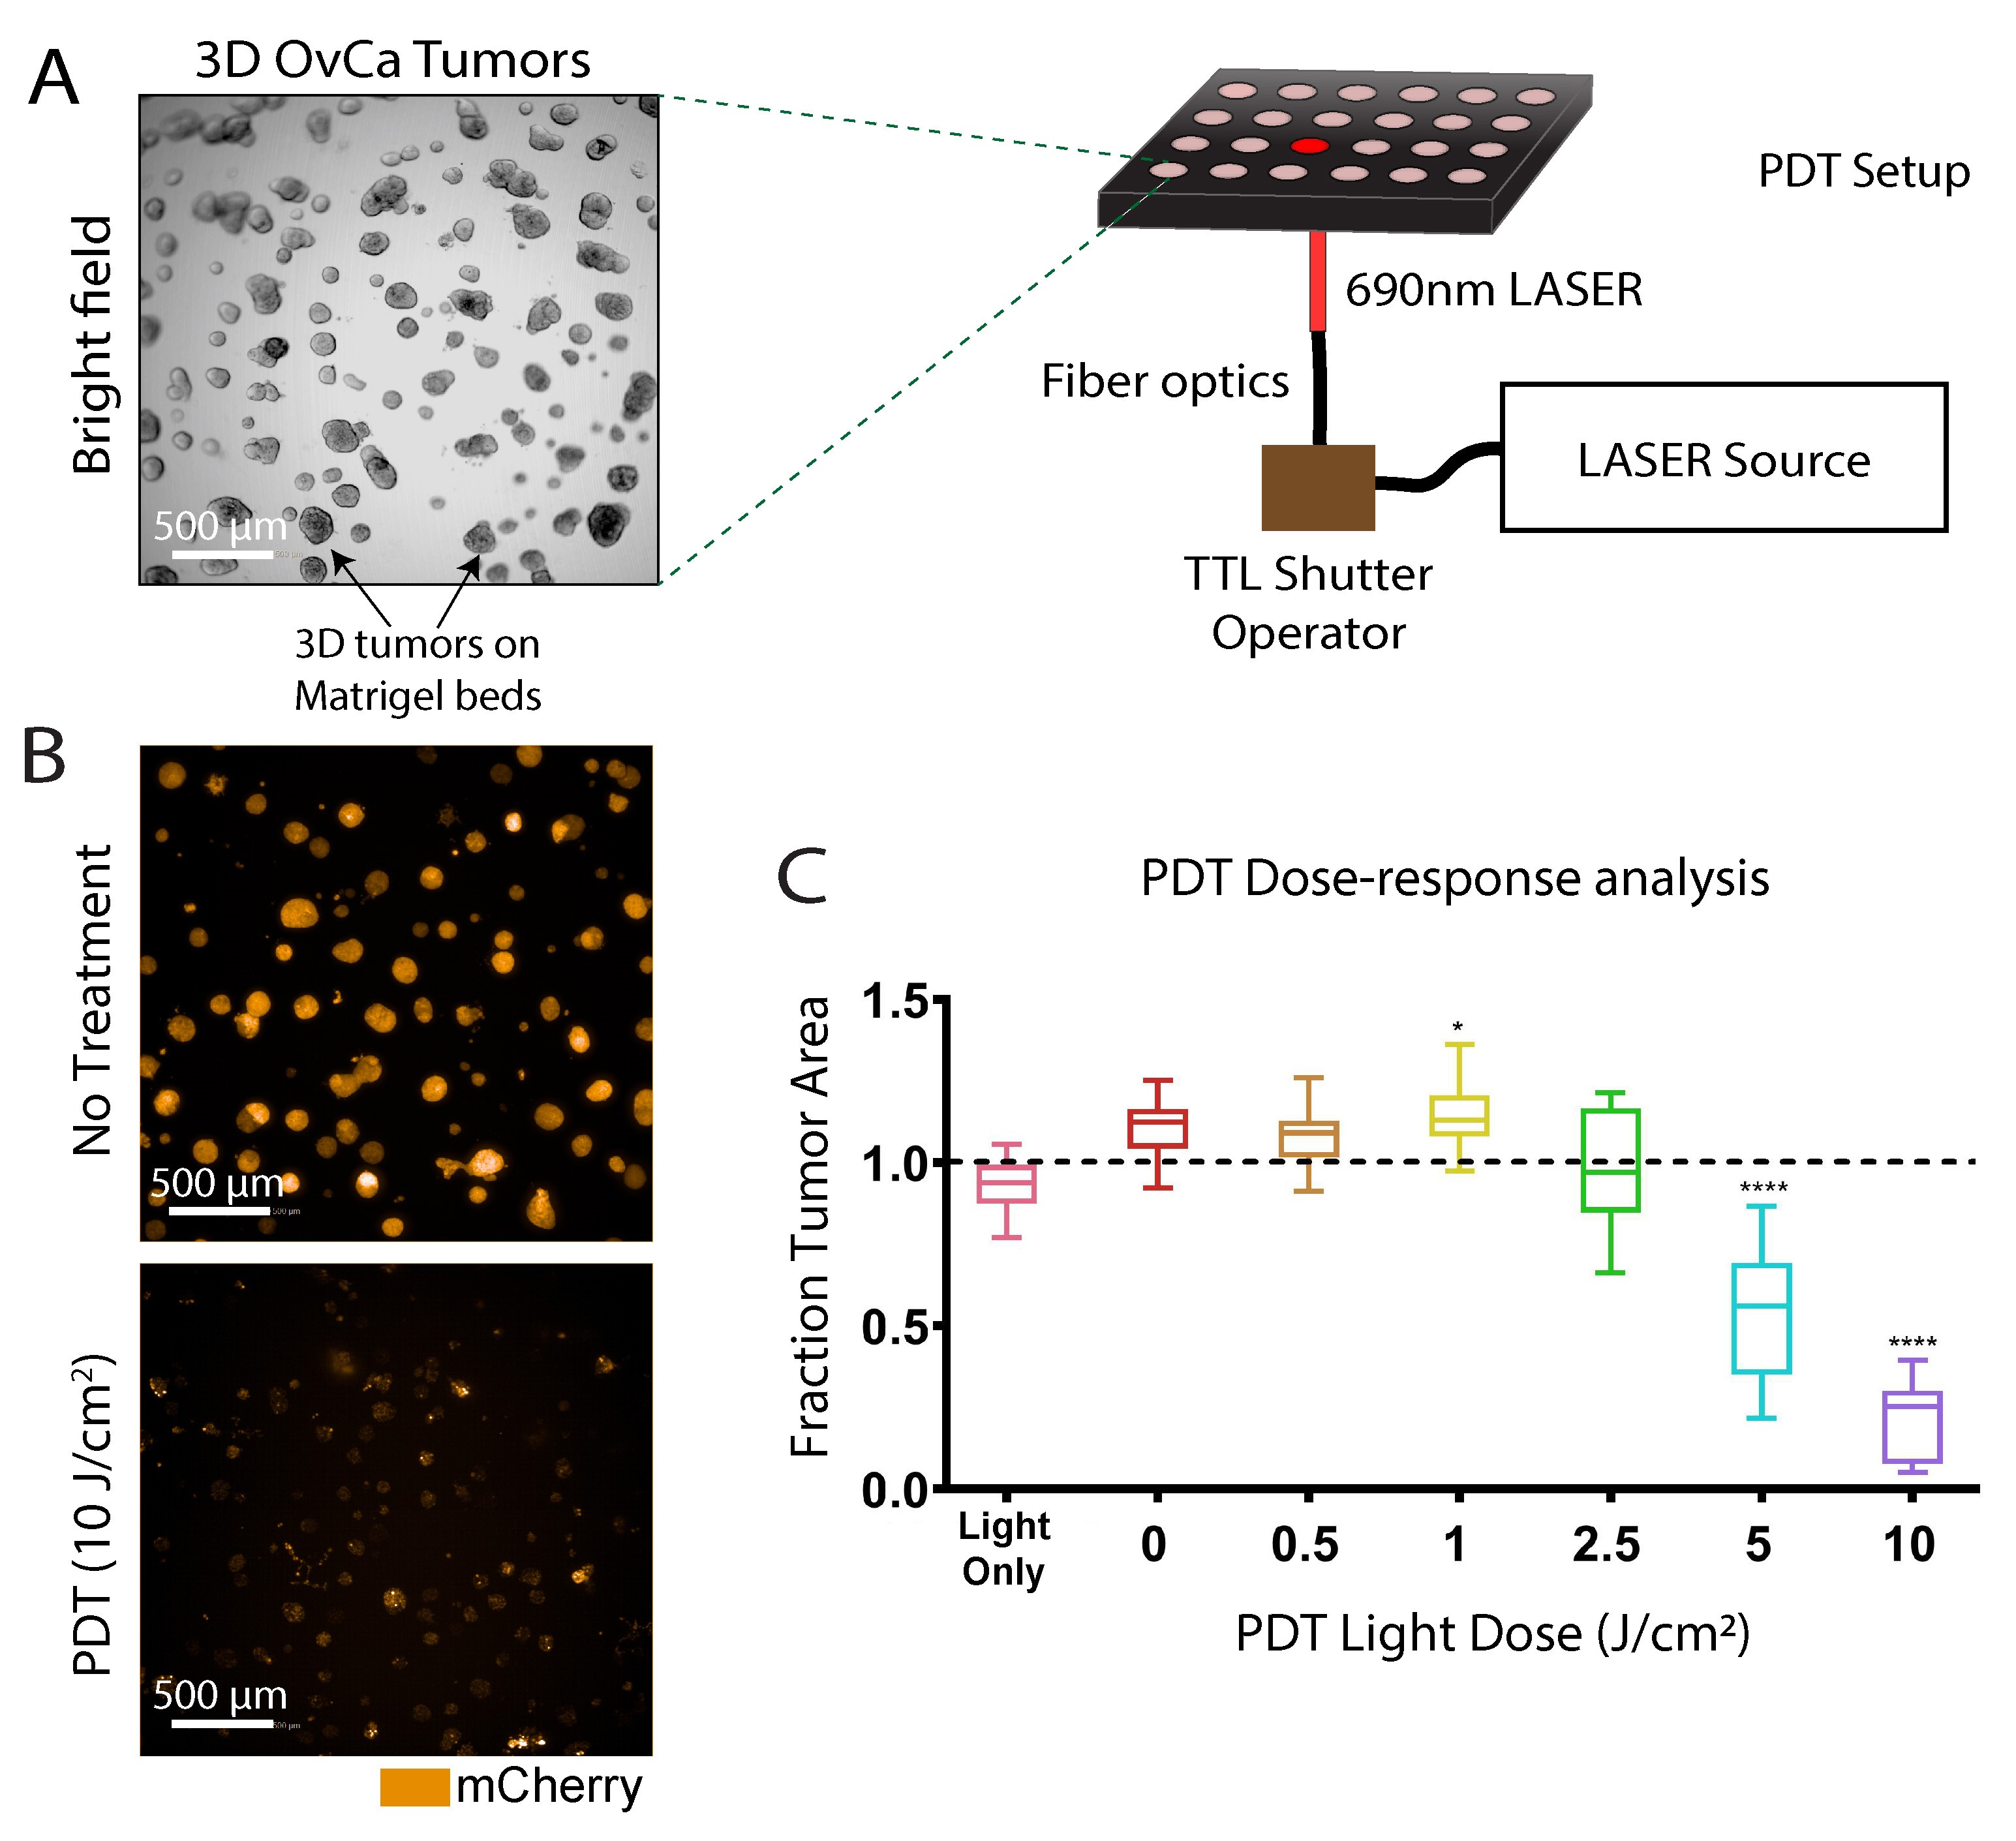 Photodynamic Therapy In A 3d Model Of Ovarian Cancer